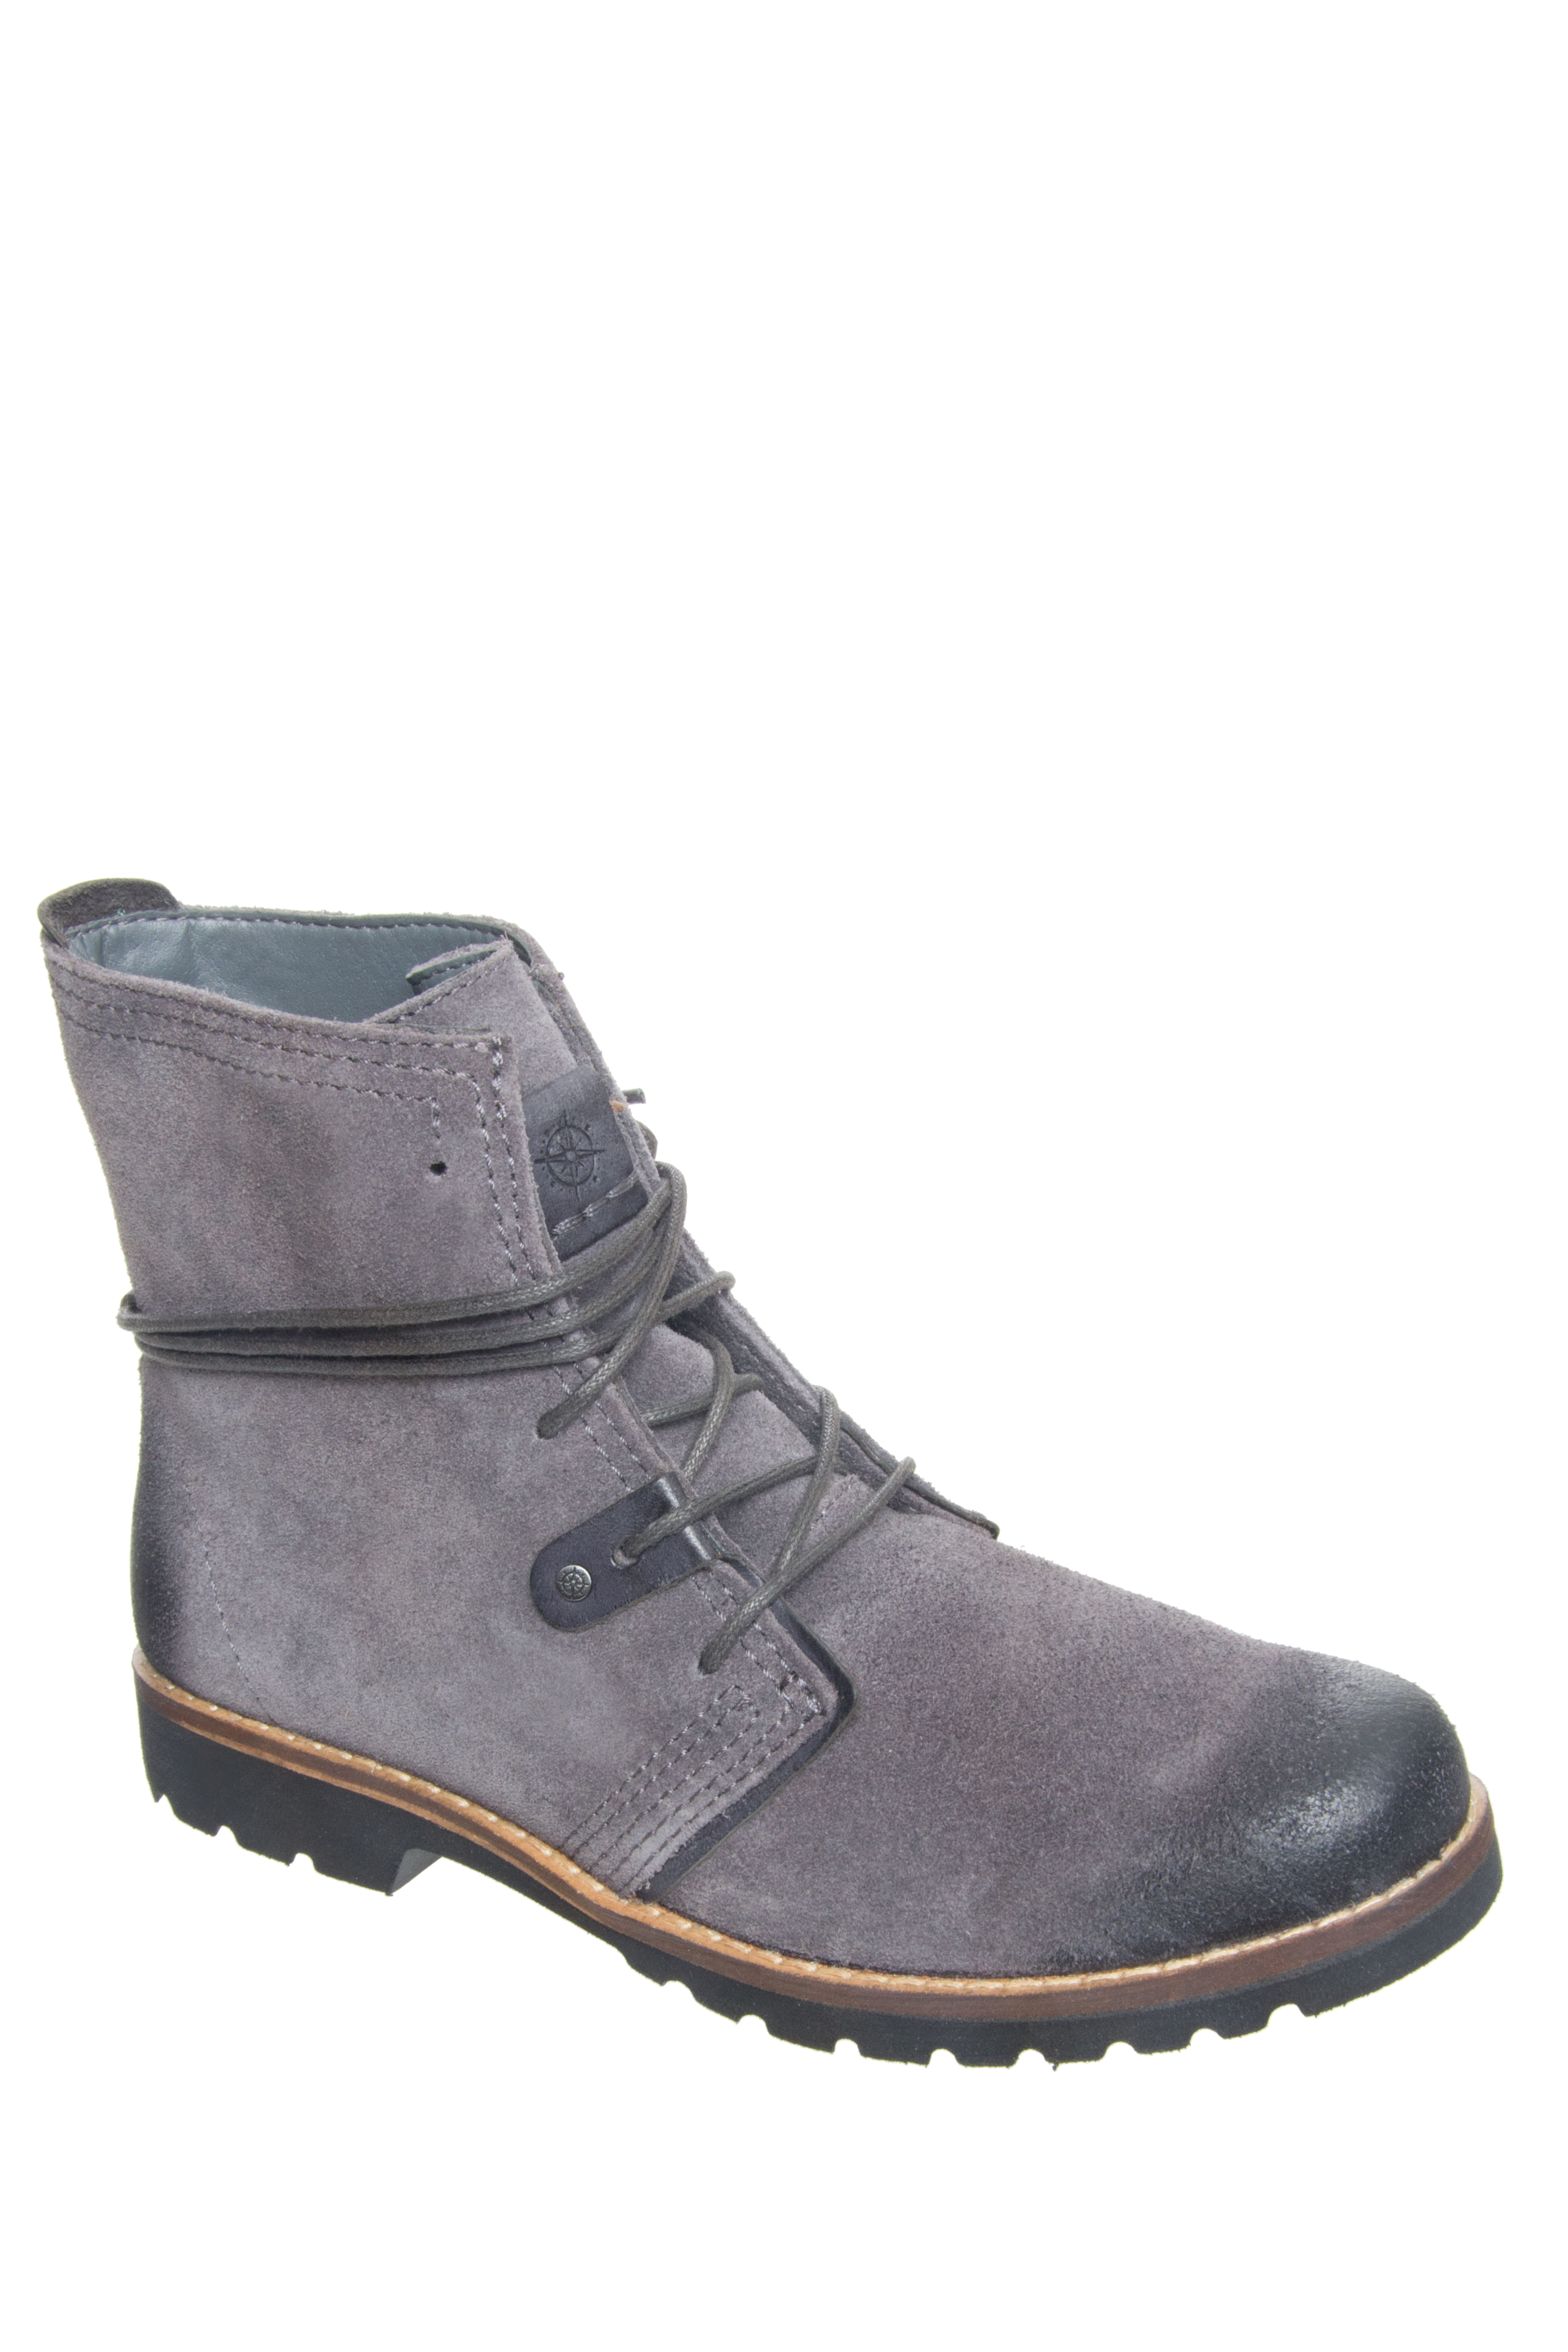 Bussola Keely Lace Up Boots - Charcoal